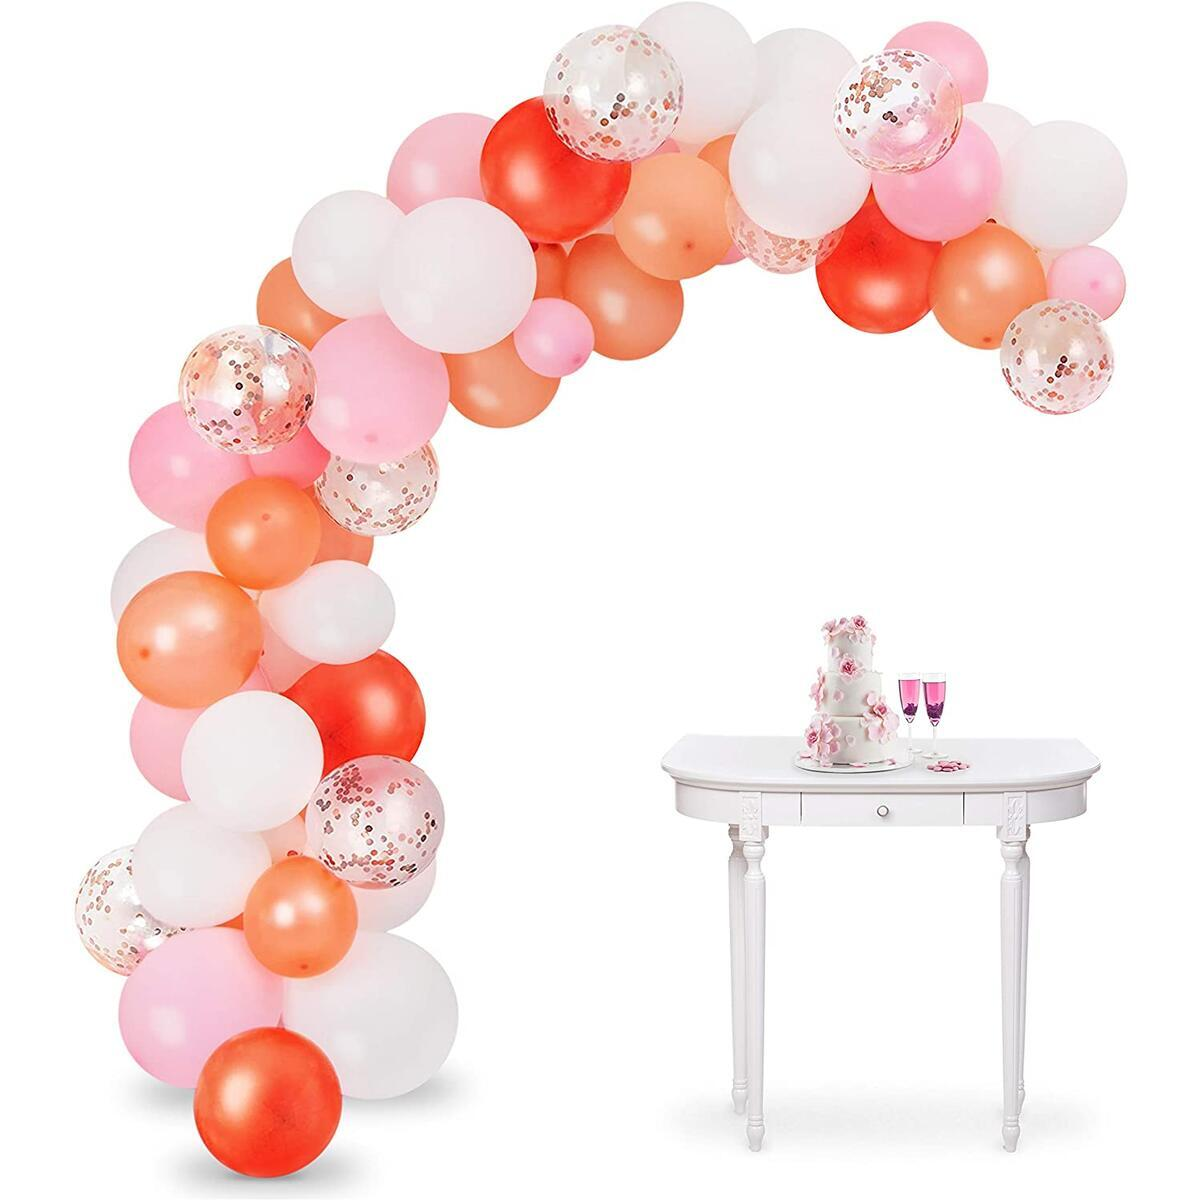 Pink Balloon Garland Arch Kit - 104 Pcs Assorted Sizes & Colors - Rose Gold, Pink, White, Confetti Rose Gold Latex Balloons - 16-Foot DIY Party Supplies for Birthdays, Showers, Weddings, and More